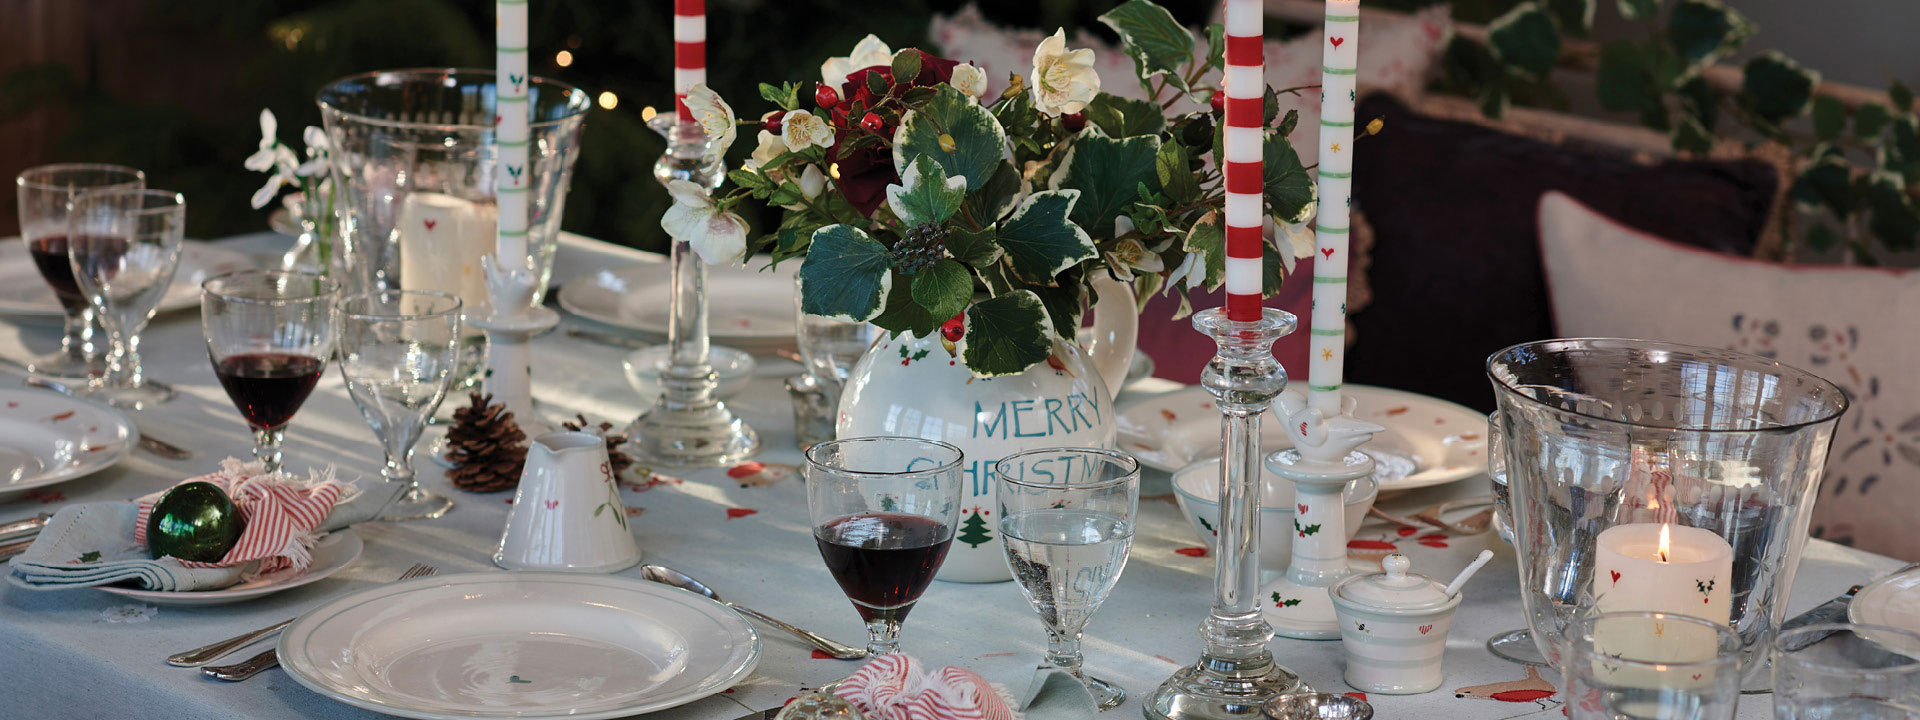 Christmas Table Decoration Day